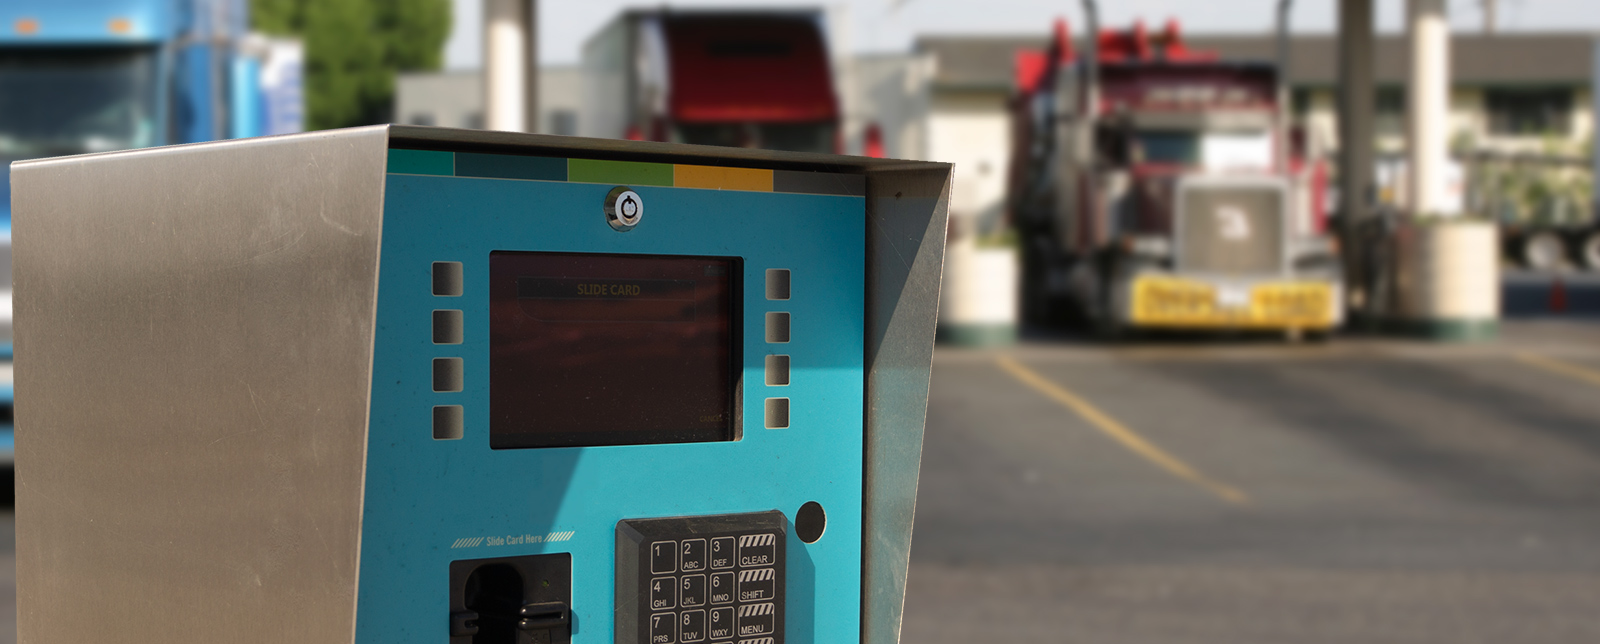 cardlock card reader truck stop